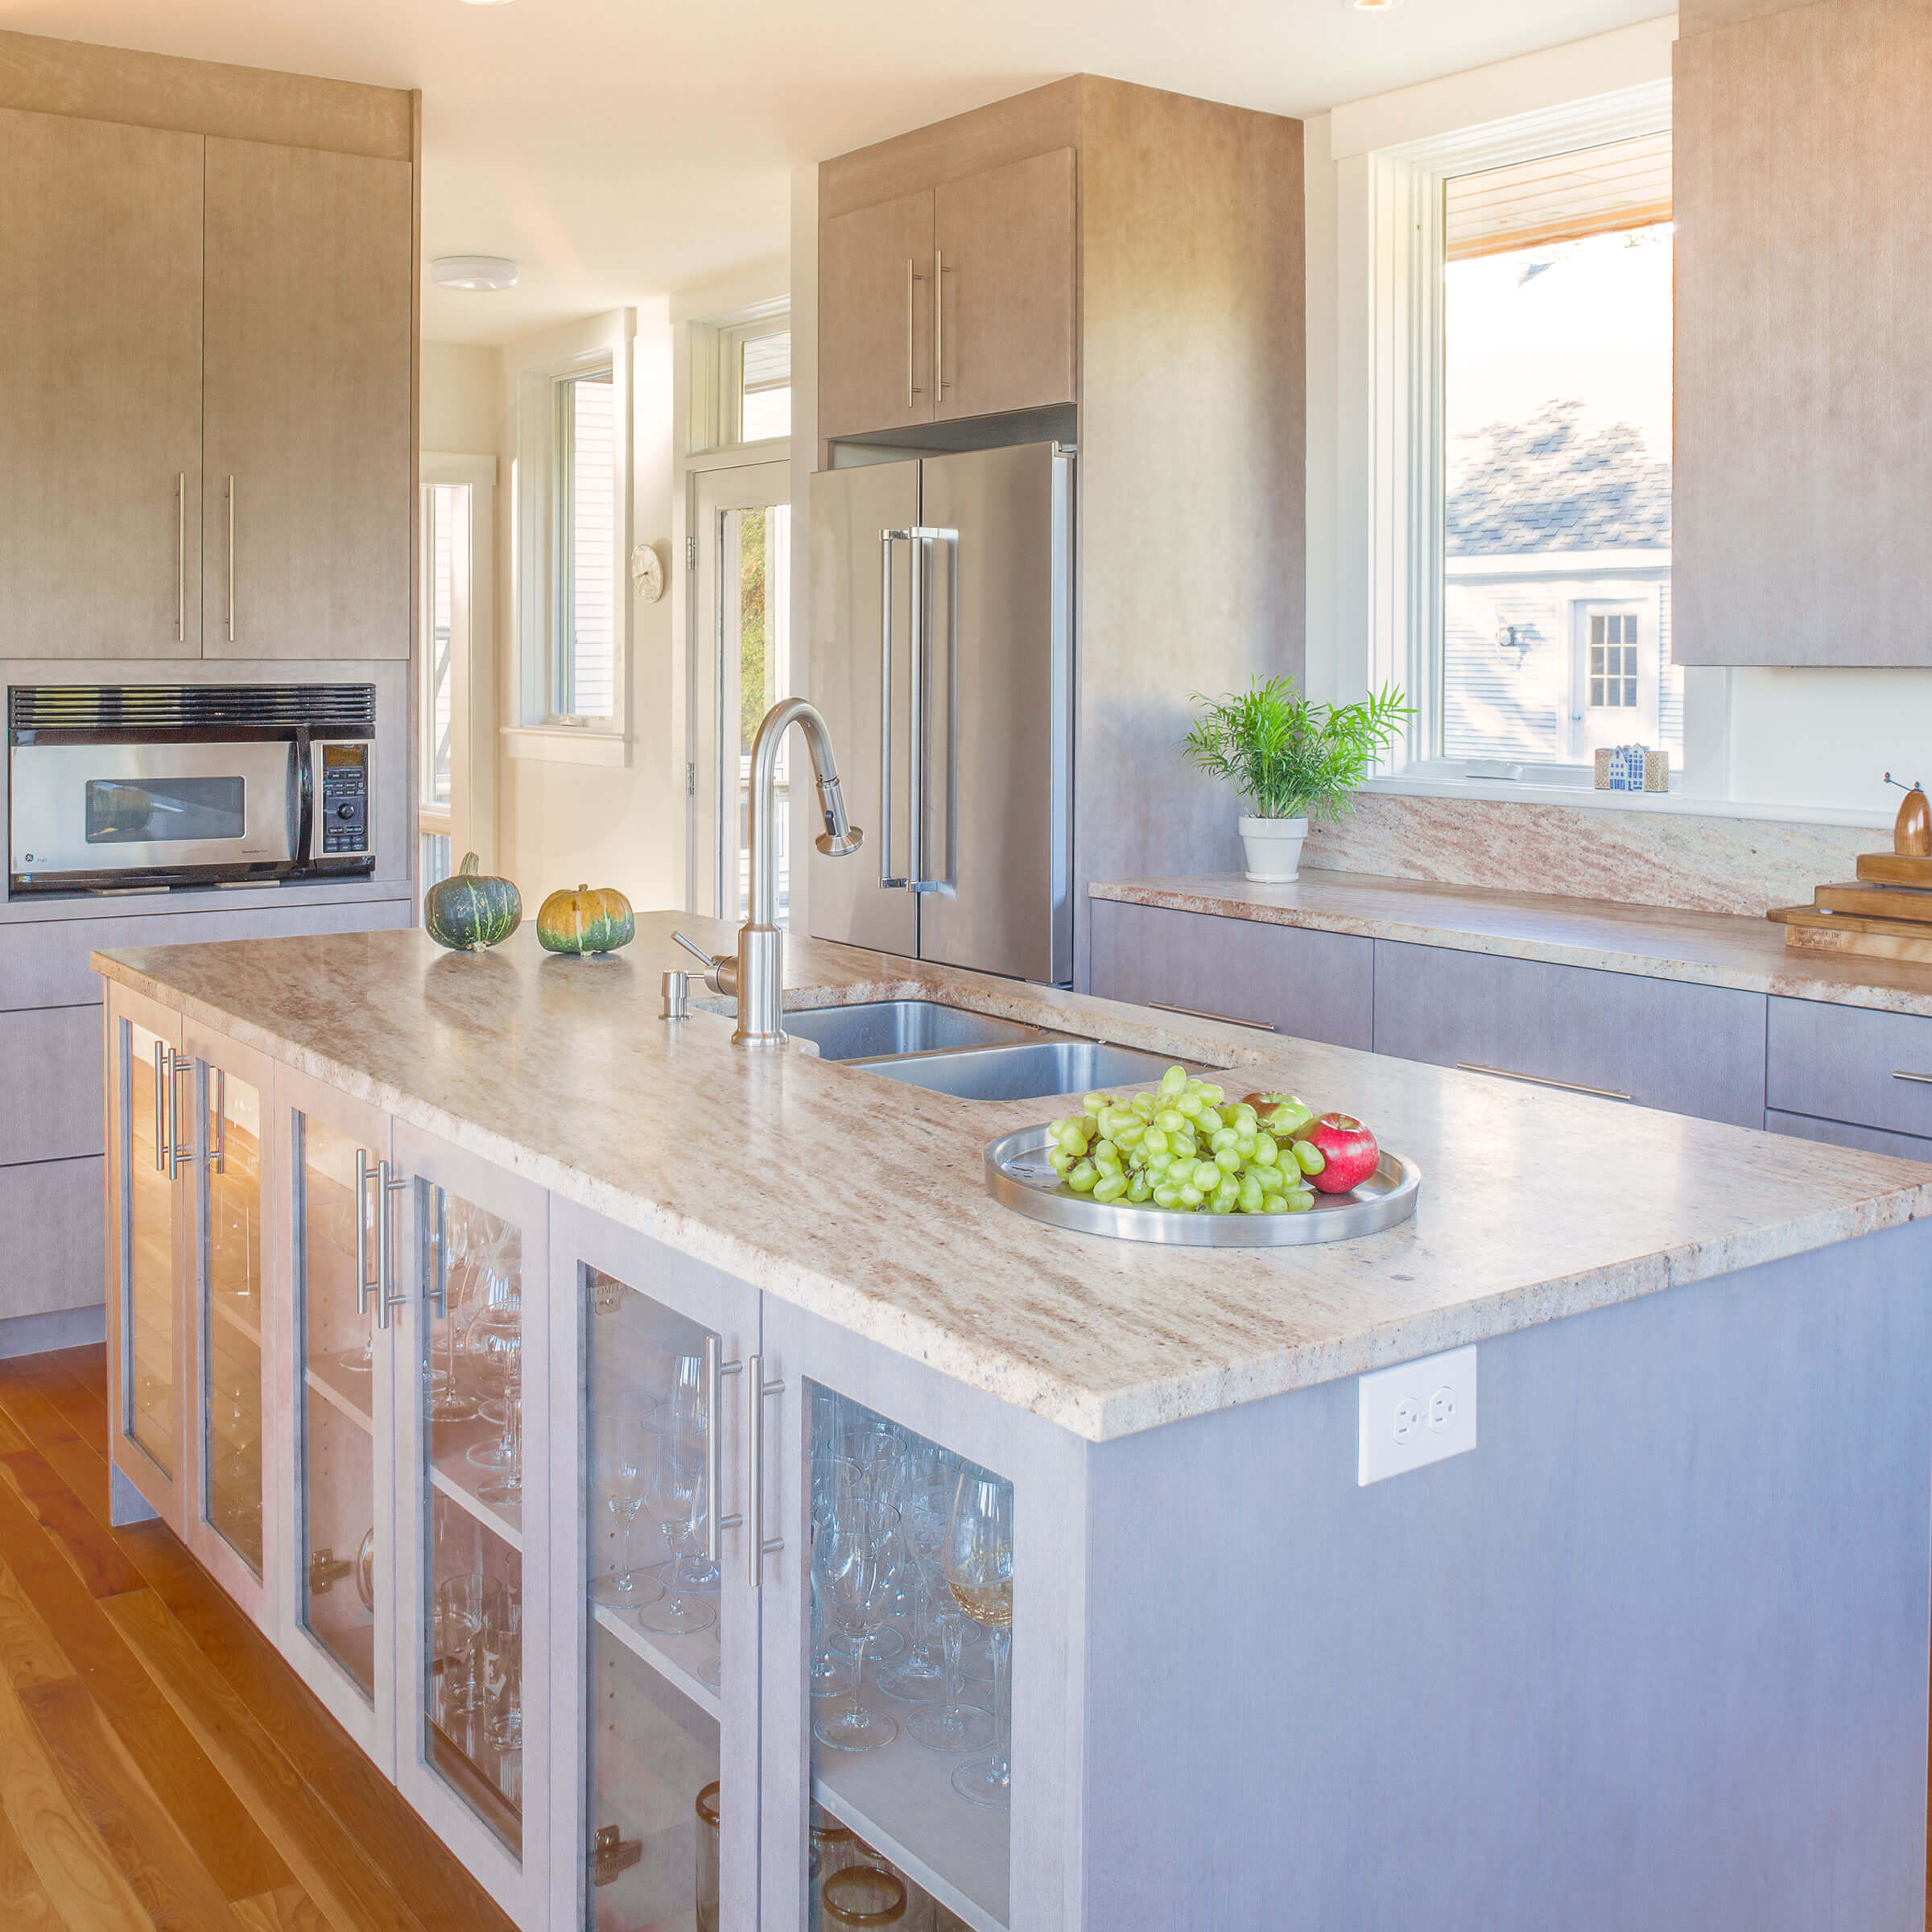 Sunny Kitchen With Elevate Windows